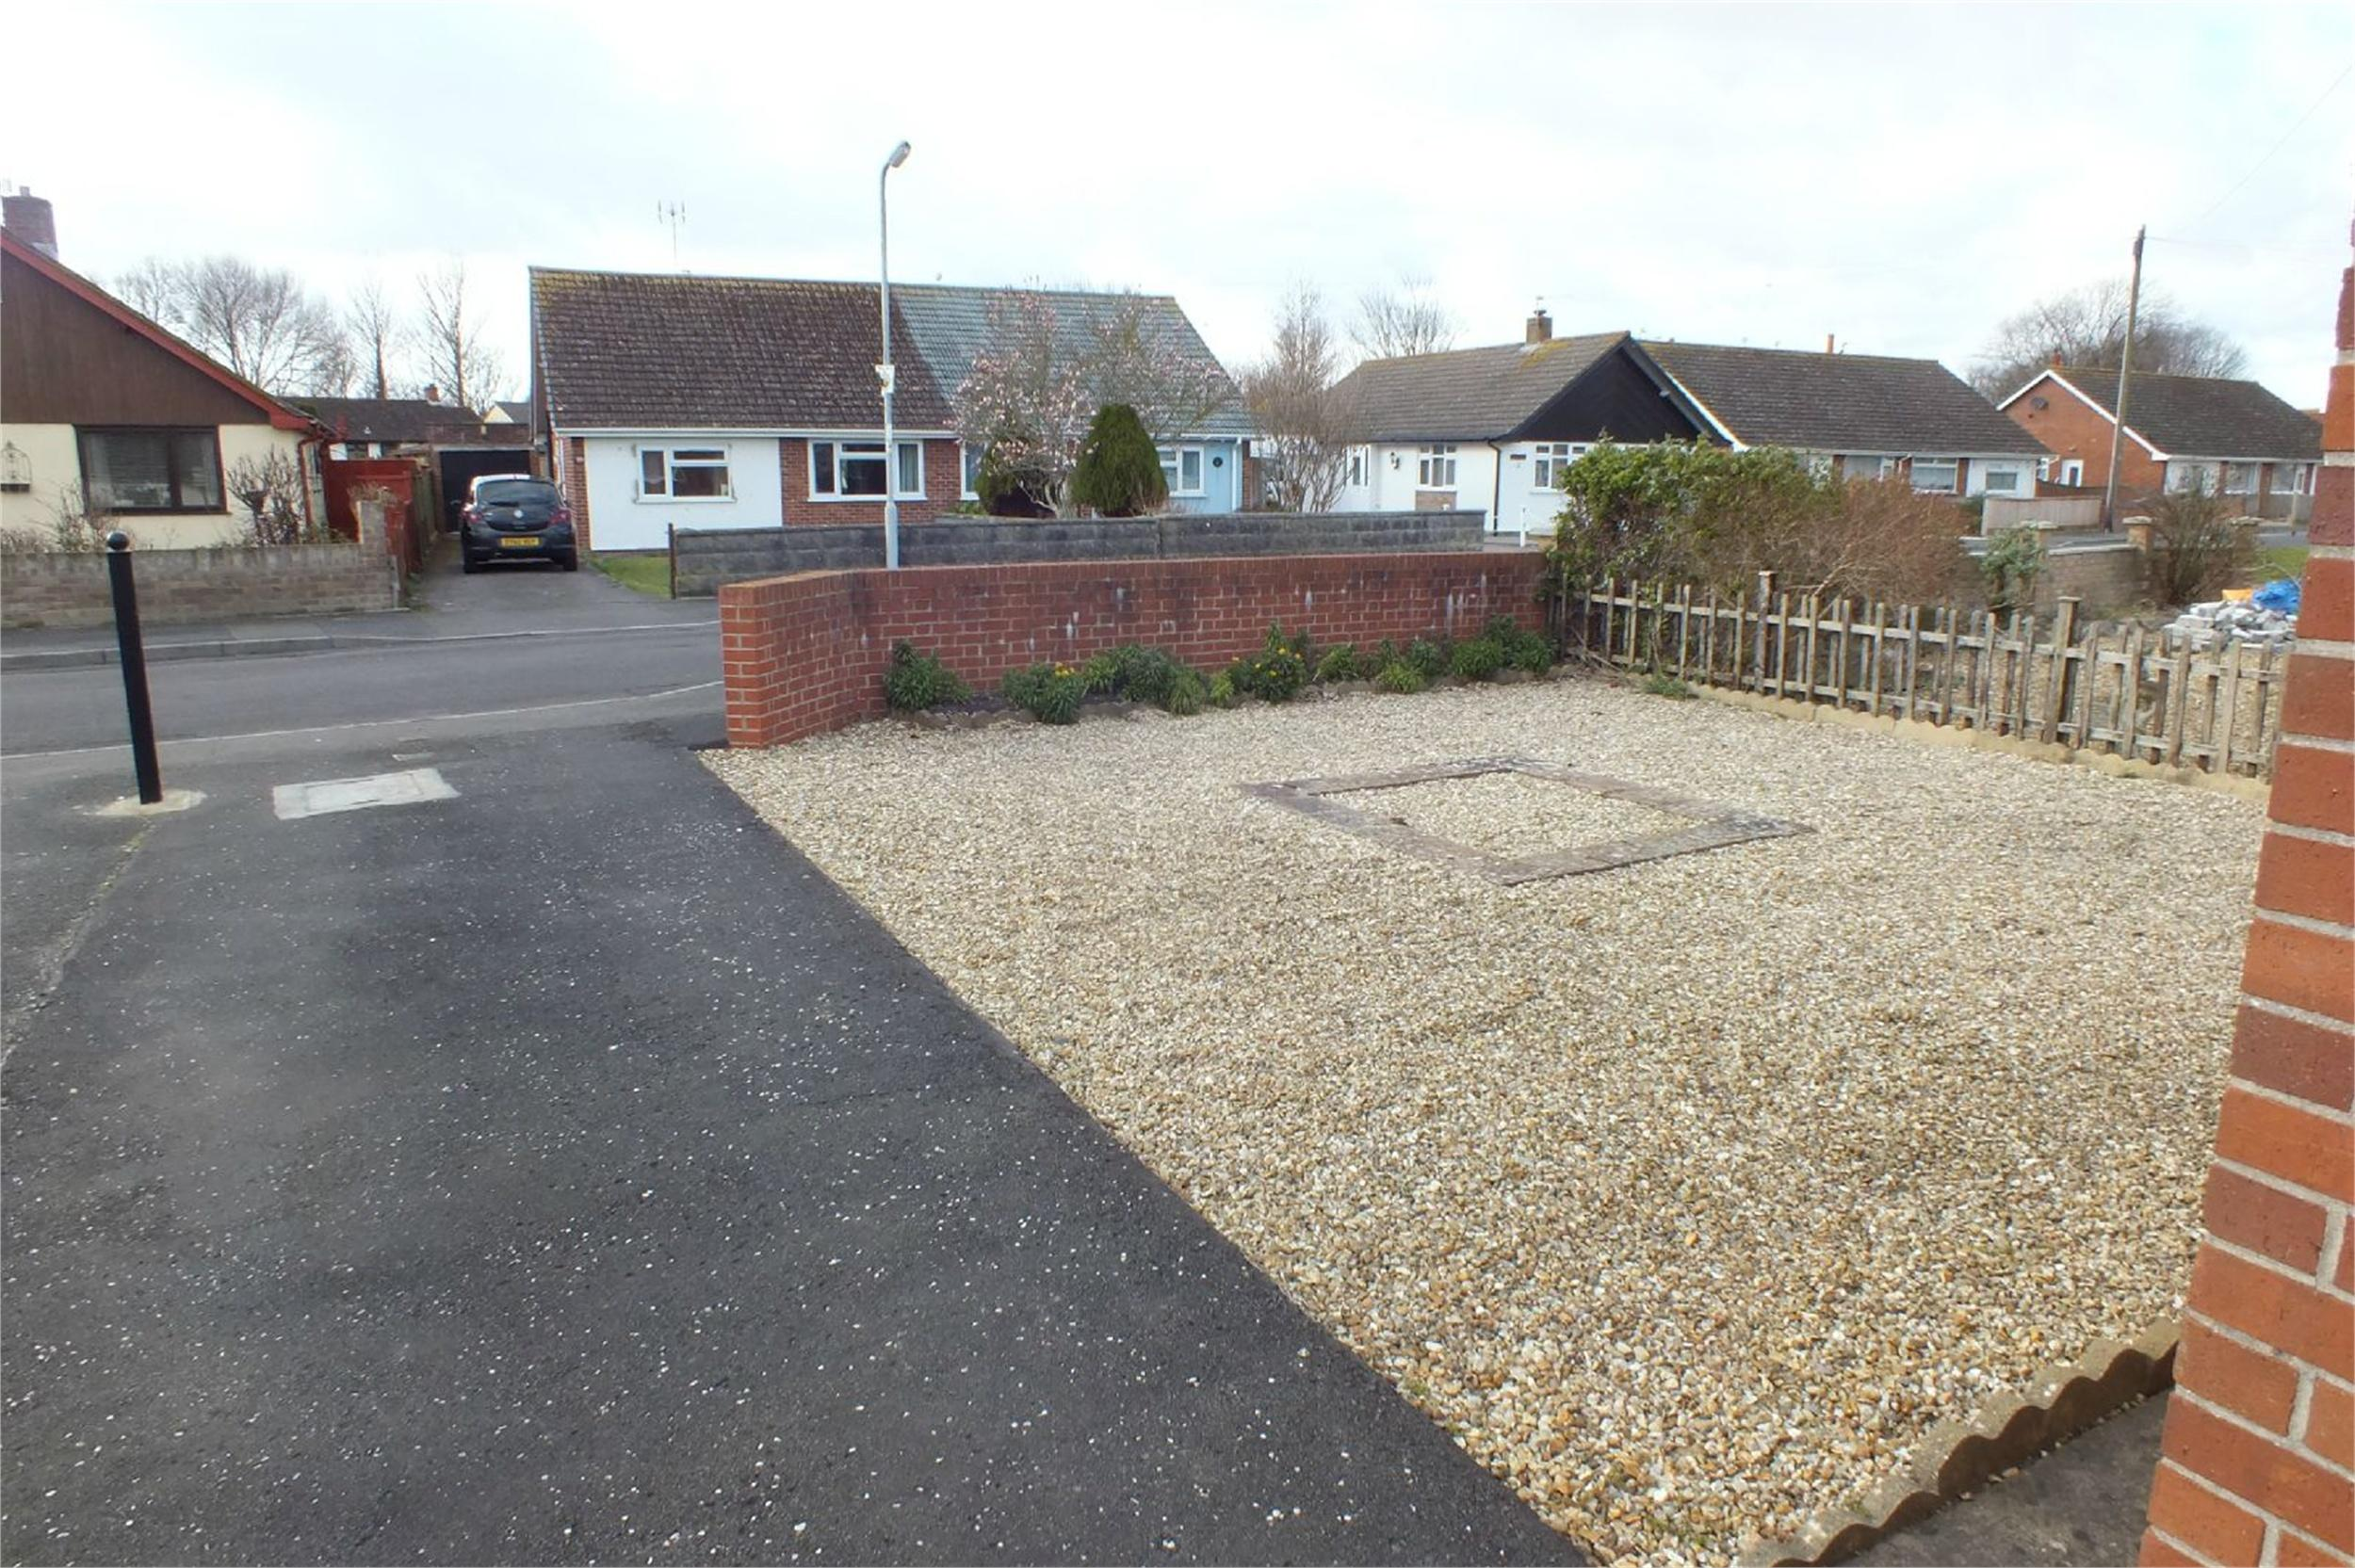 Cj Hole Burnham On Sea 2 Bedroom Semi Detached Bungalow For Sale In Apex Drive Burnham On Sea